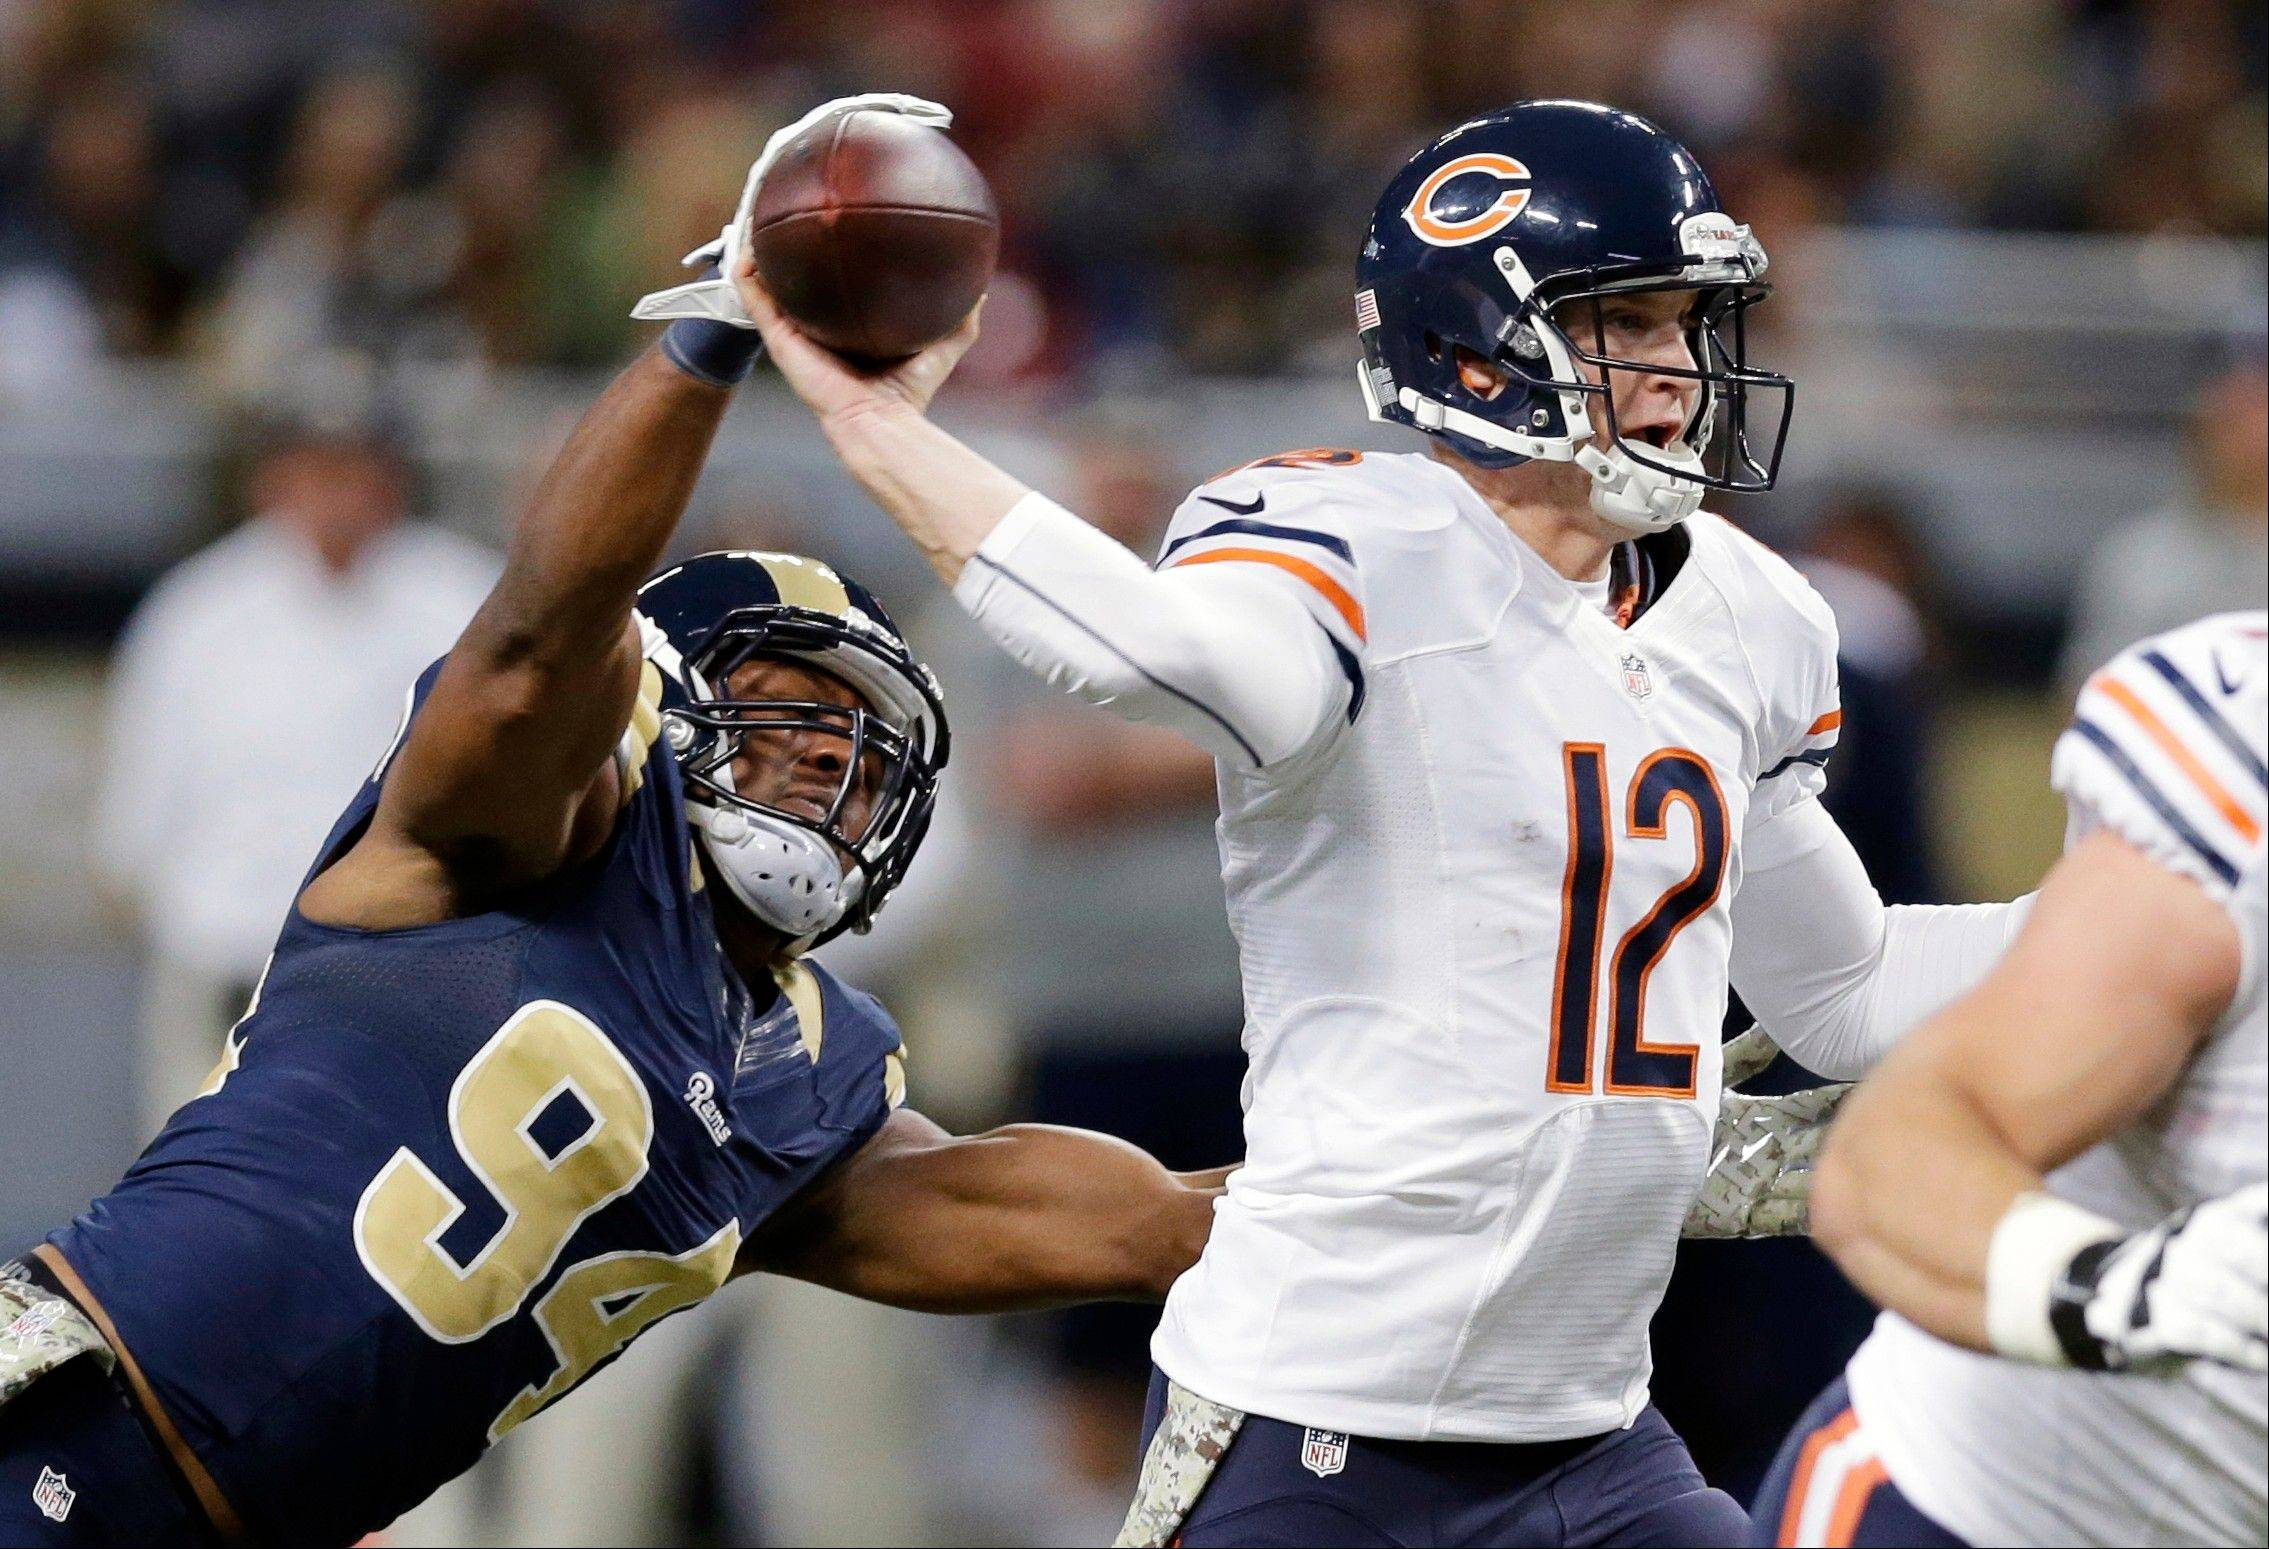 St. Louis Rams defensive end Robert Quinn, left, gets his hand on the ball as Chicago Bears quarterback Josh McCown throws during the first quarter.